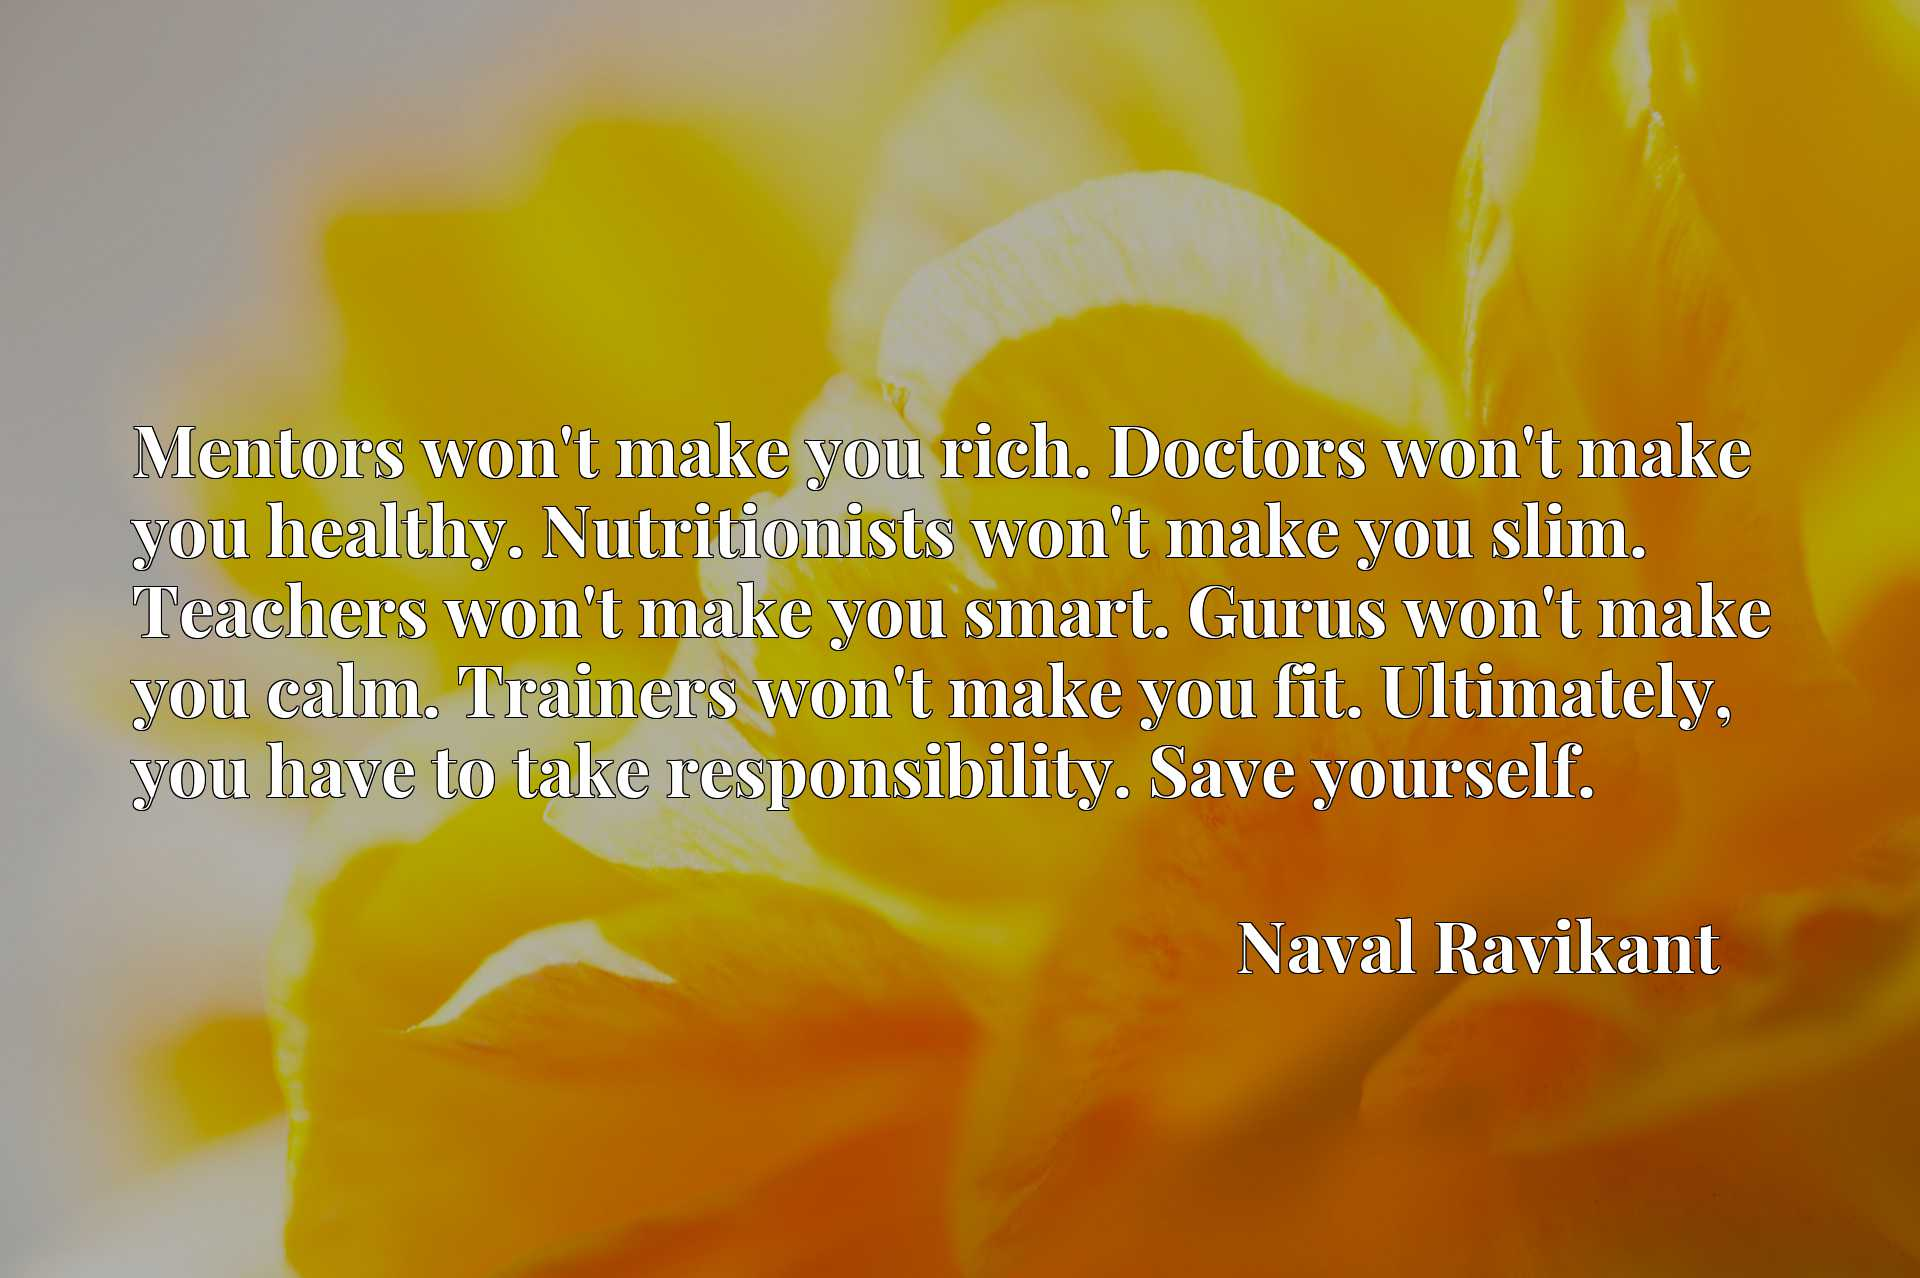 Mentors won't make you rich. Doctors won't make you healthy. Nutritionists won't make you slim. Teachers won't make you smart. Gurus won't make you calm. Trainers won't make you fit. Ultimately, you have to take responsibility. Save yourself.